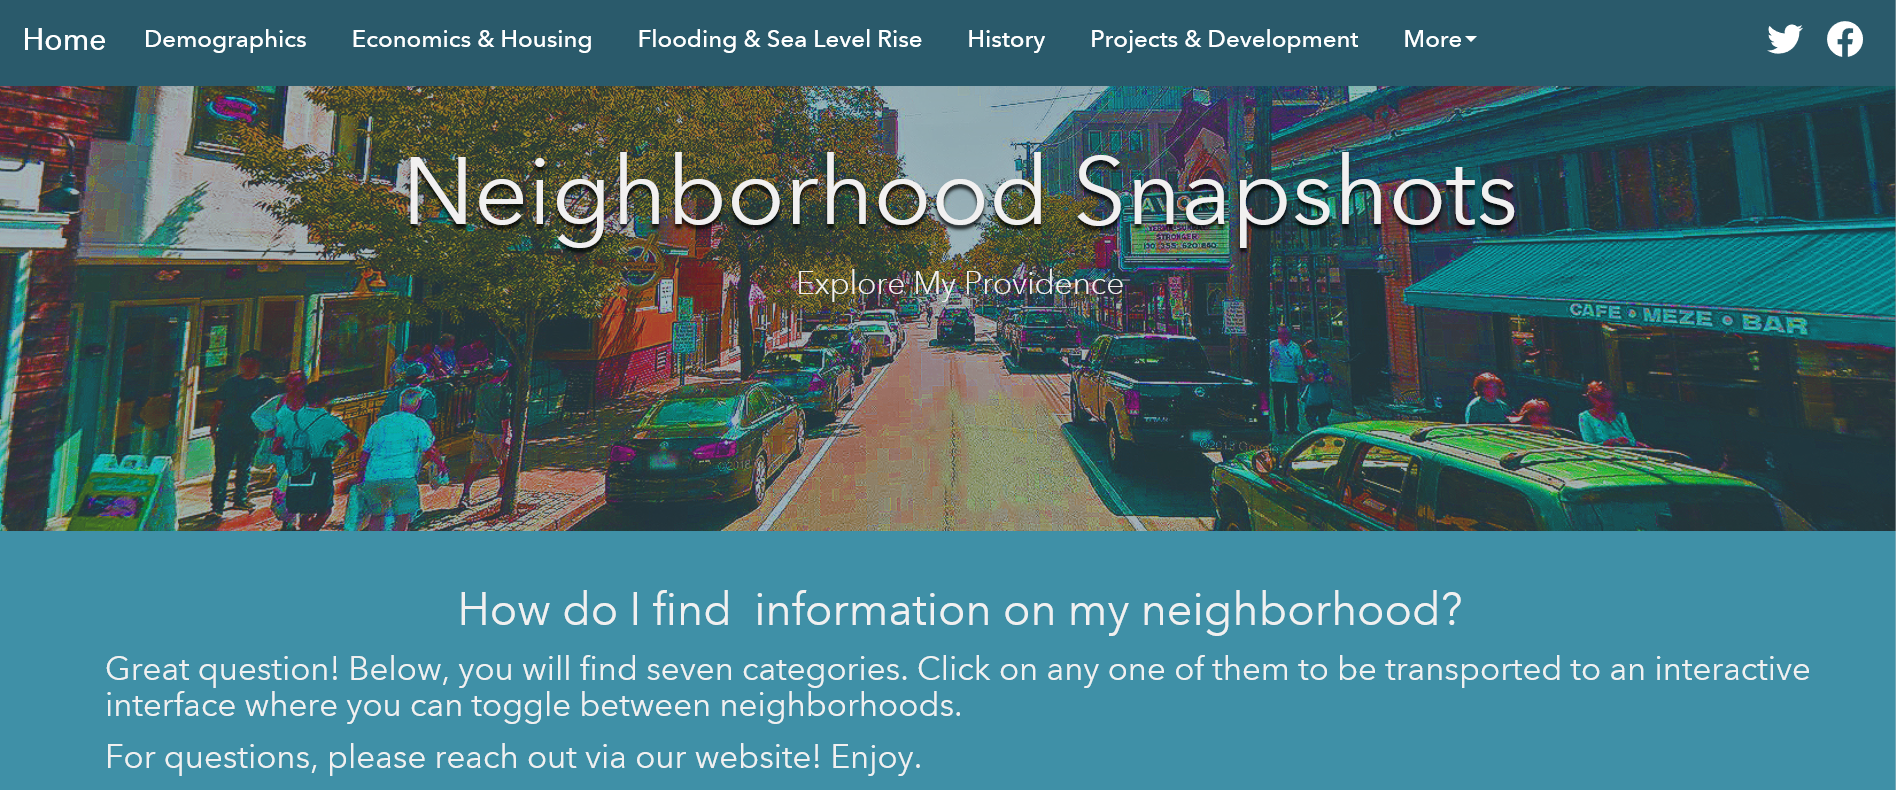 Neighborhood Snapshots Platform Now Live